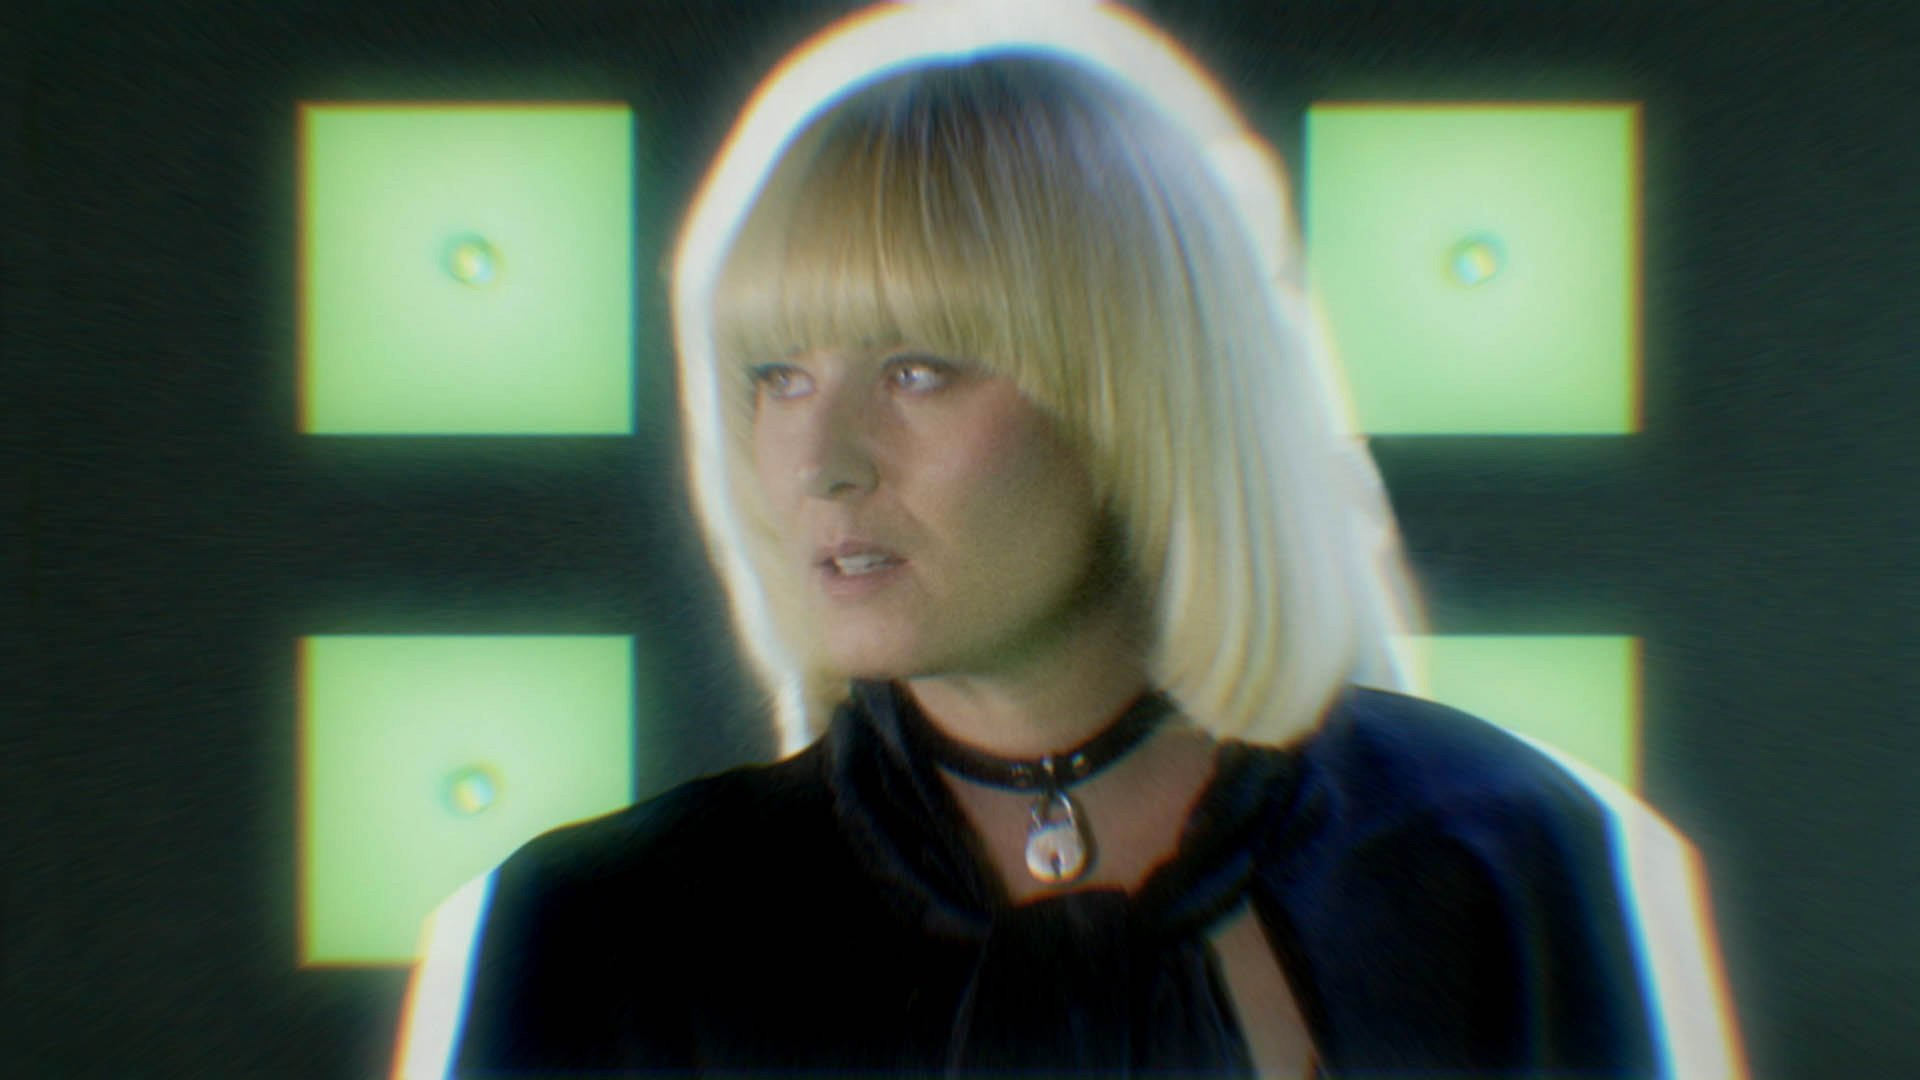 RÓISÍN MURPHY shares video for 'Narcissus' - Watch Now